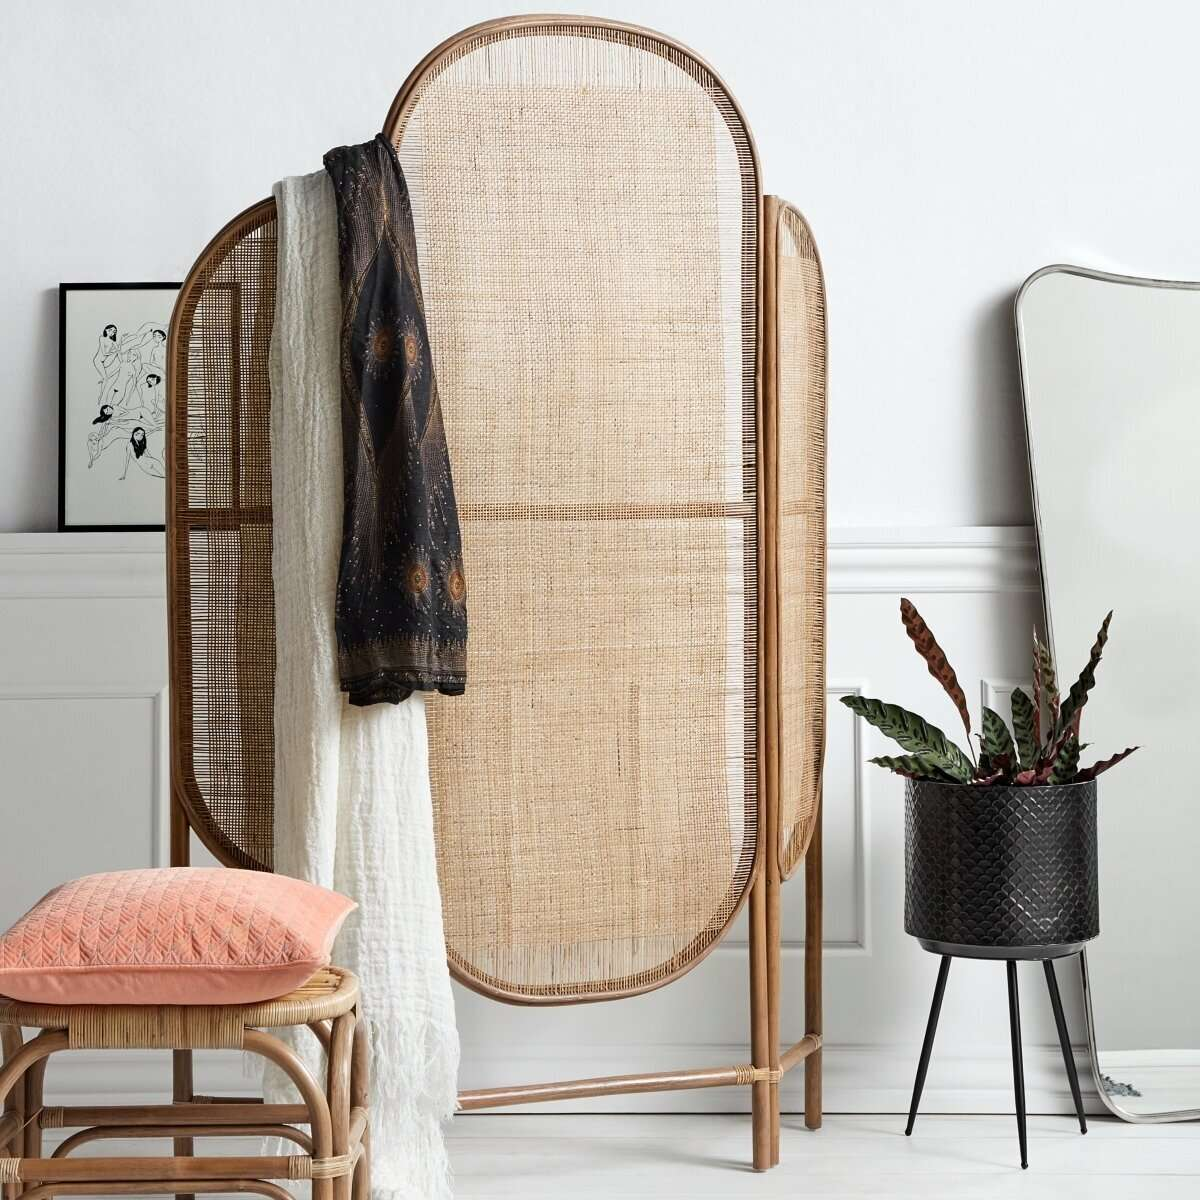 Nordal Bali Natural Rattan Room Divider Accessoies For The Home